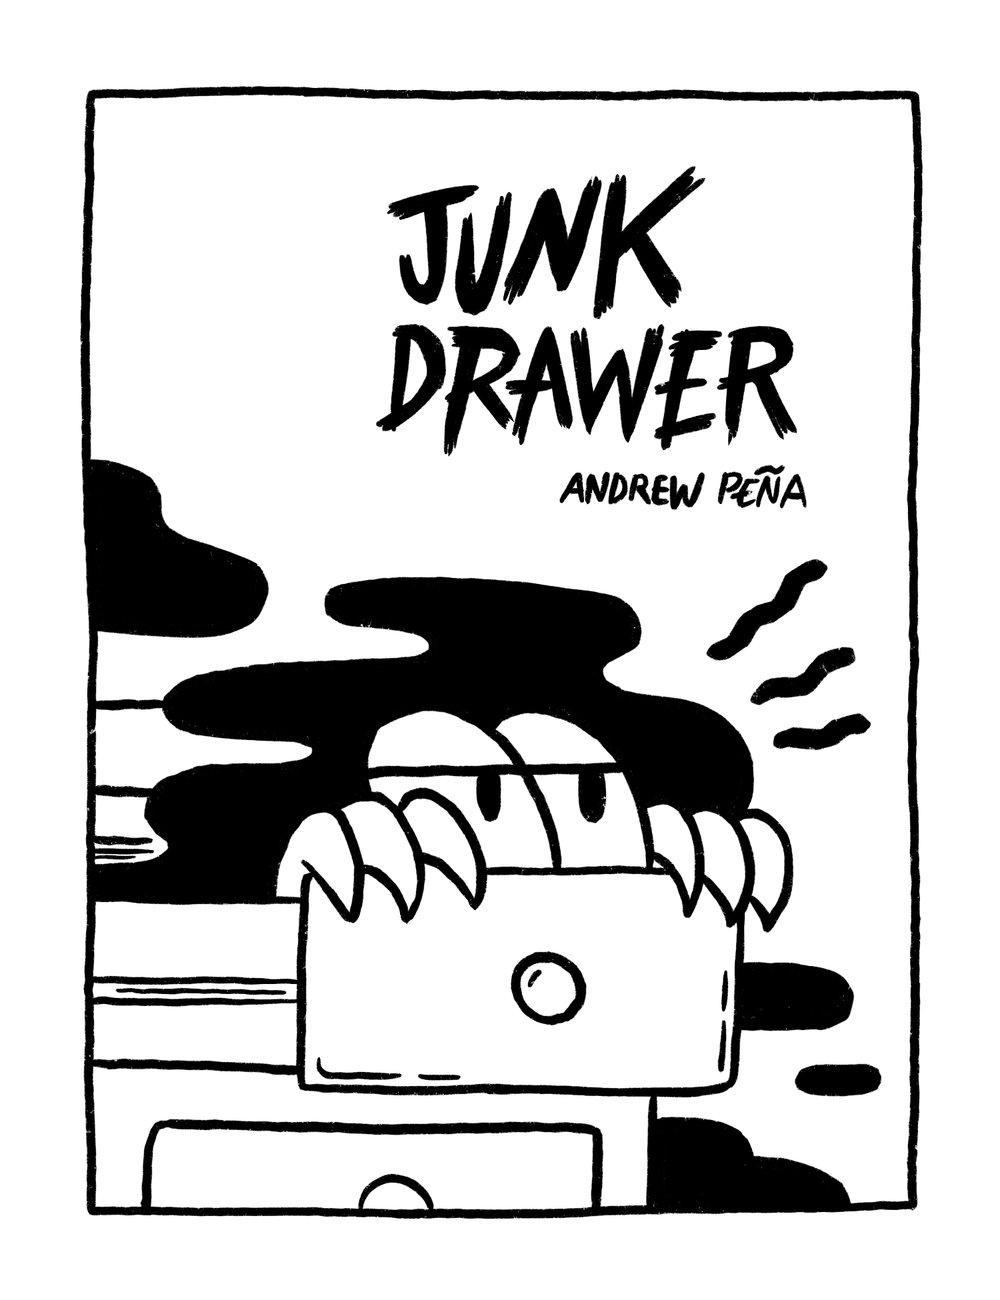 Junk Drawer - My first art zine consisting of different drawings made throughout the year. Most pages were drawn during my commute to work, which can be a pain in the butt sometimes. Such is life.